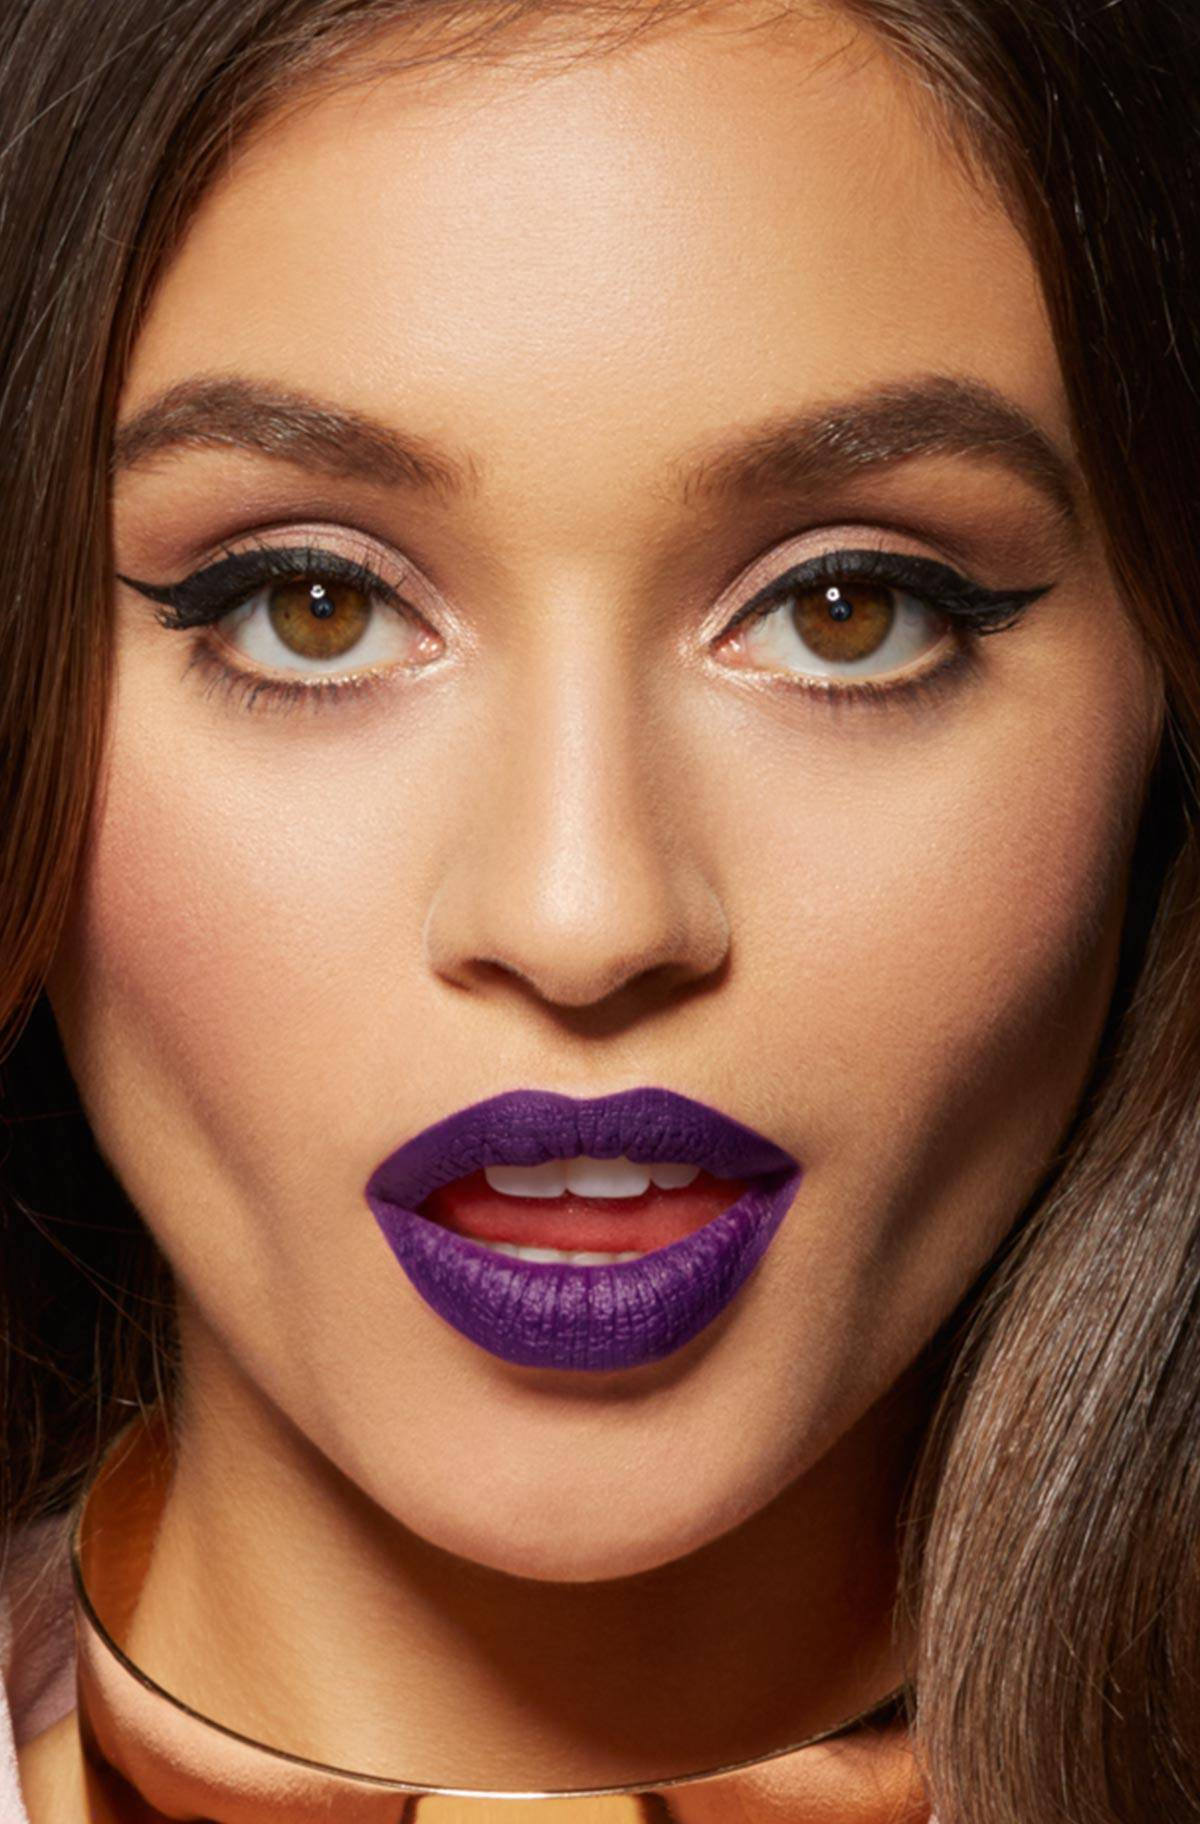 maybelline-color-sensational-loaded-bolds-purple-lips-beauty-look-3x4